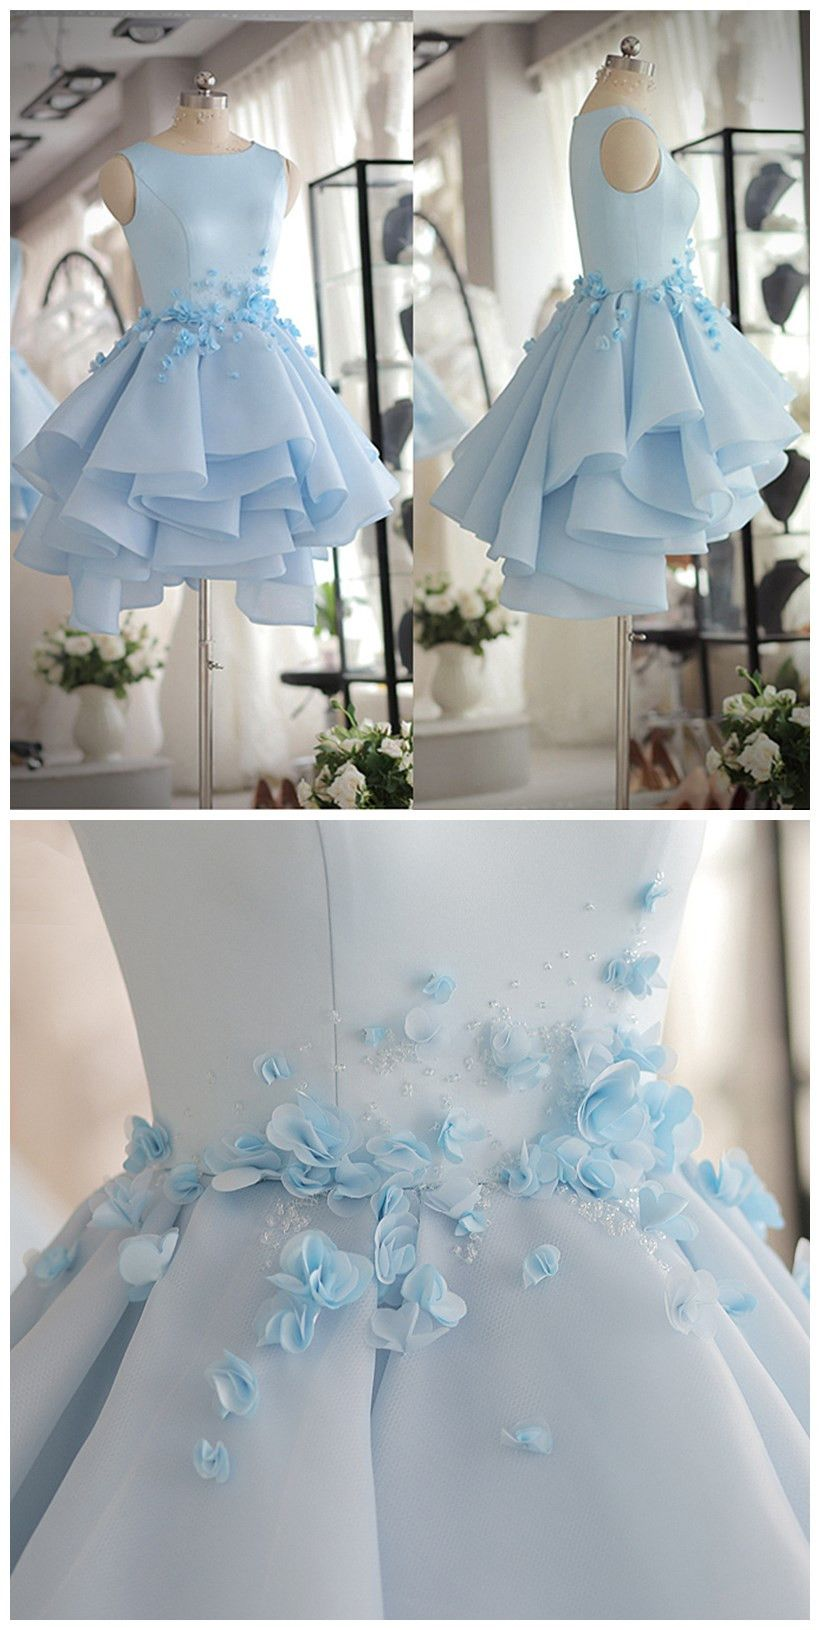 Light Blue Satin Organza Short Party Dress With Beads And Handmade ...